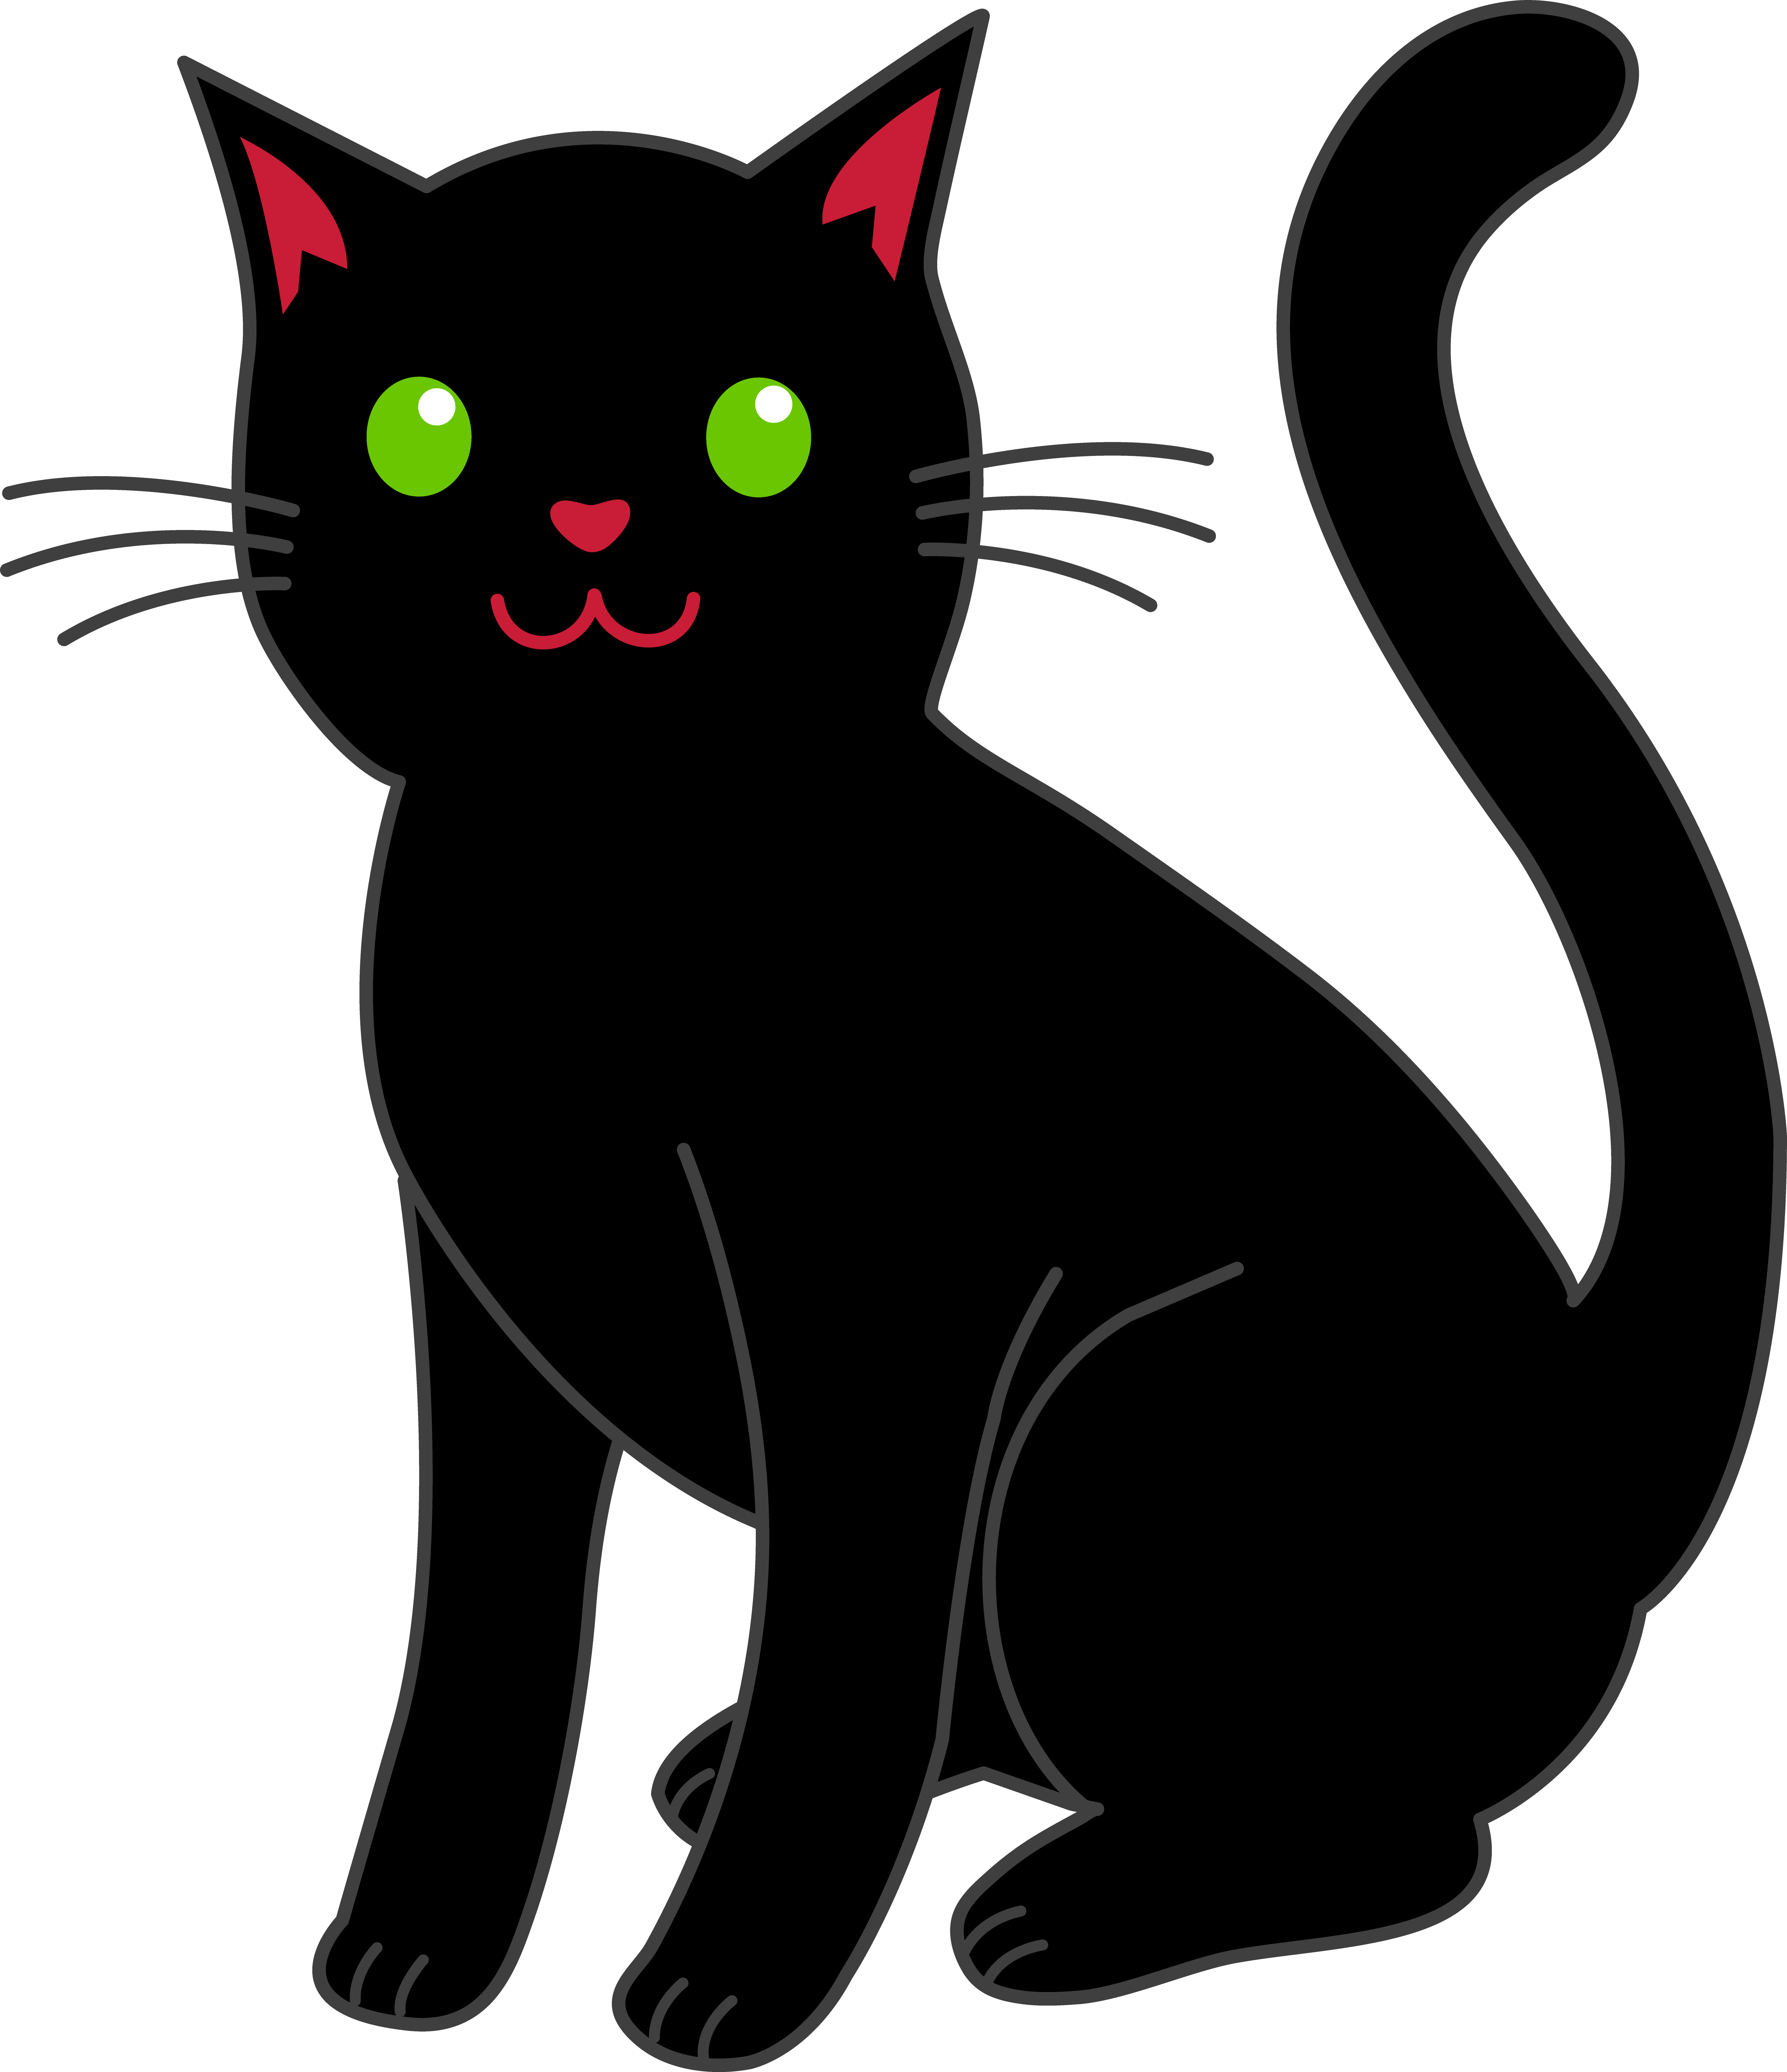 Free cat clipart images clipa - Cat Clipart Free